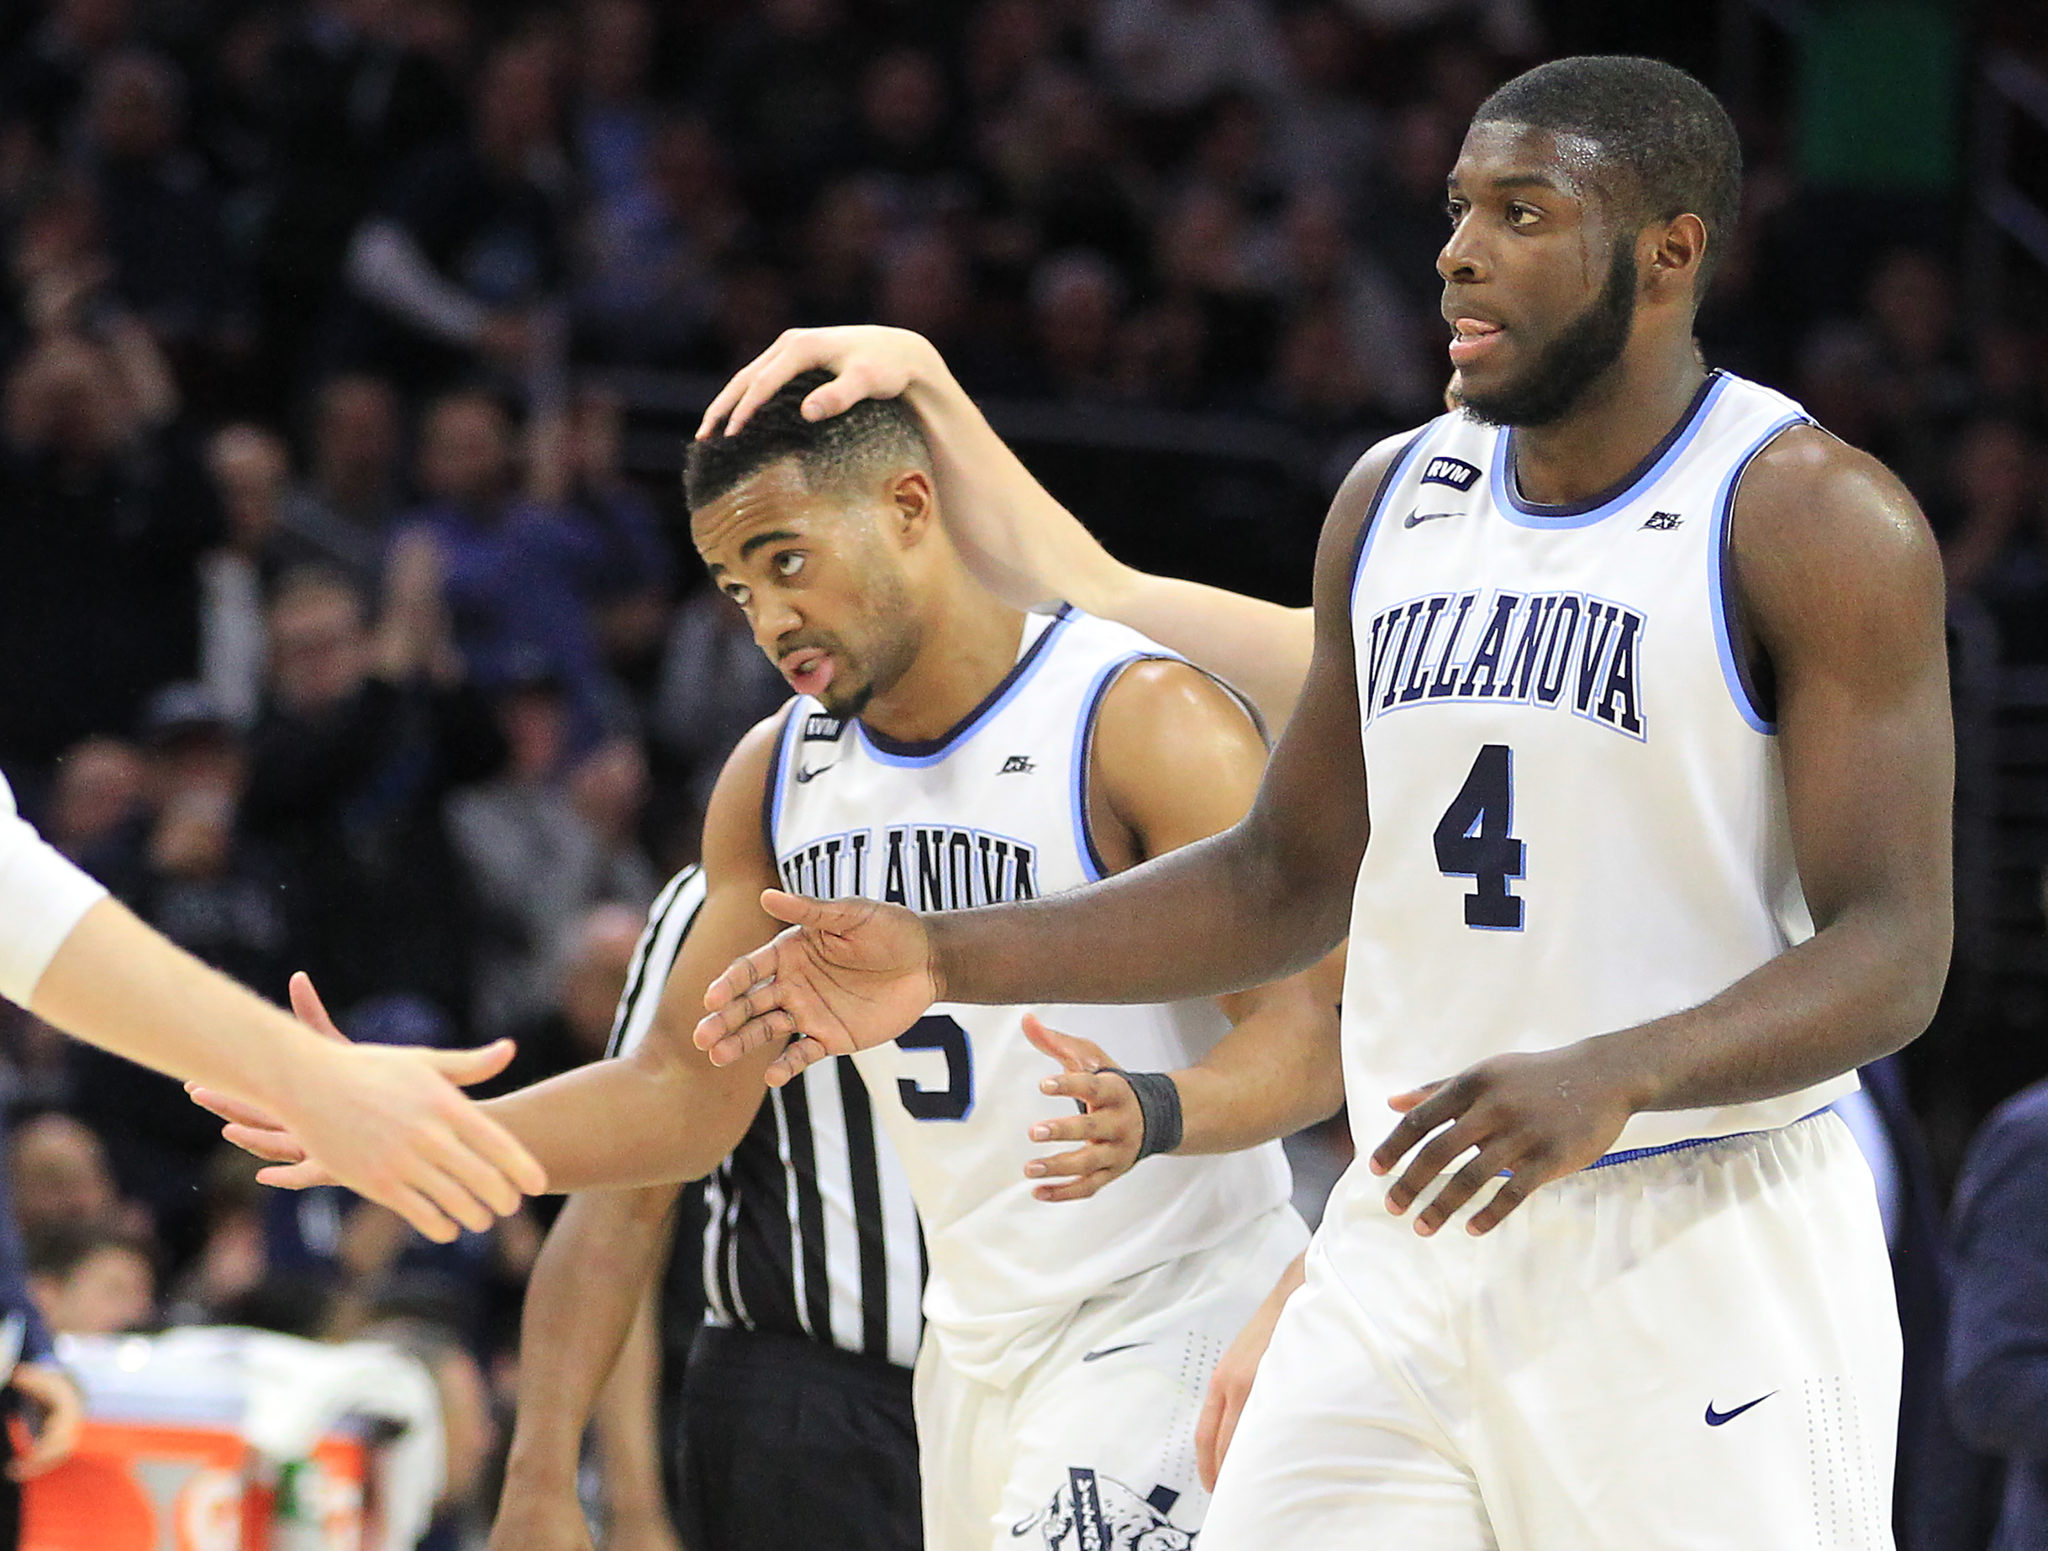 Phil Booth, left, and Eric Paschall of Villanova are congratulated during a timeout as Villanove defeated Xavier 89-65 at the Wells Fargo Center on Jan 10, 2018.